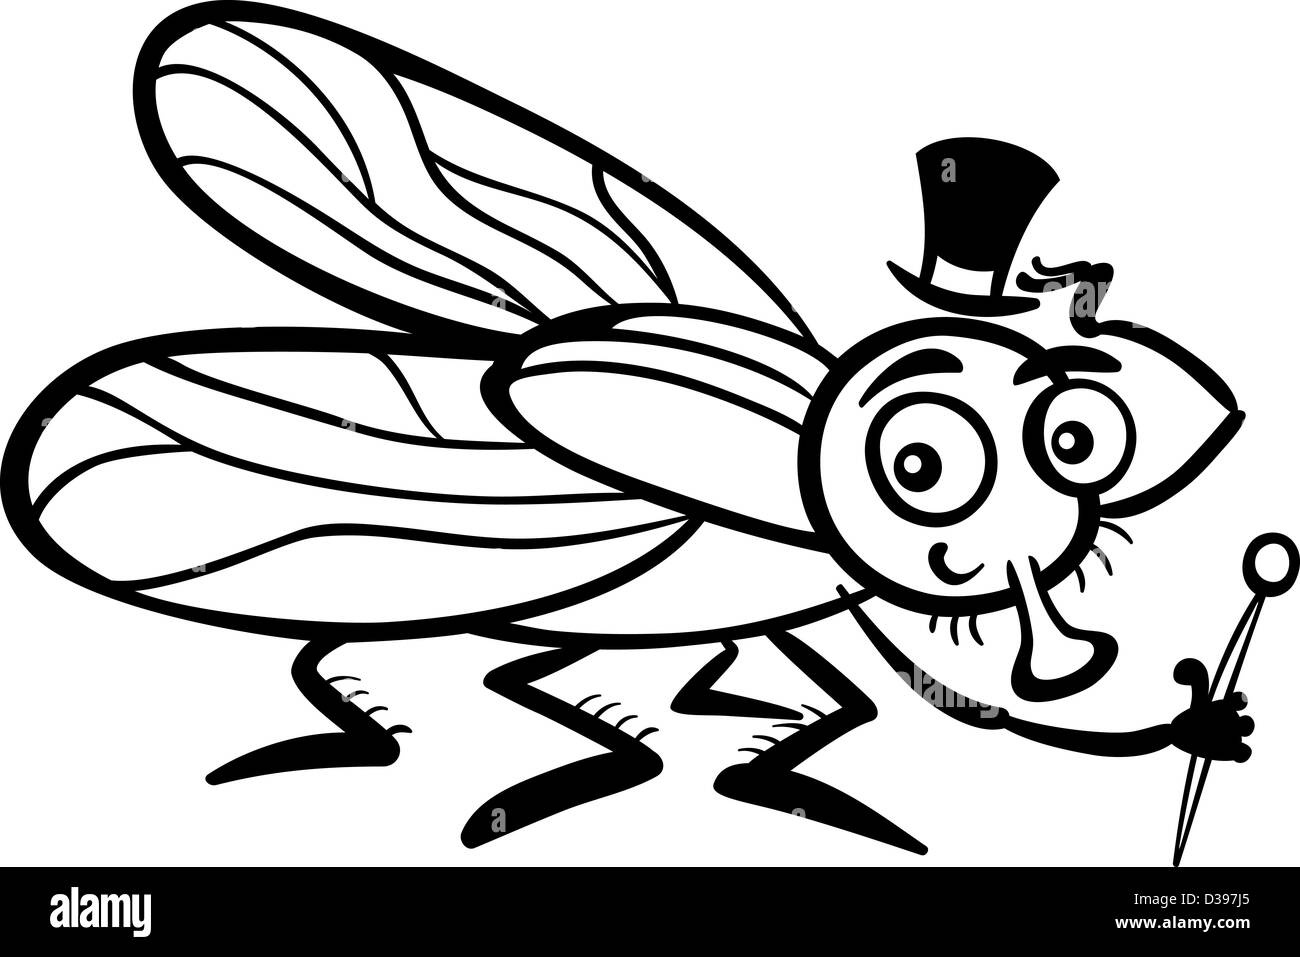 Black and White Cartoon Illustration of Funny Fly or Housefly with ...